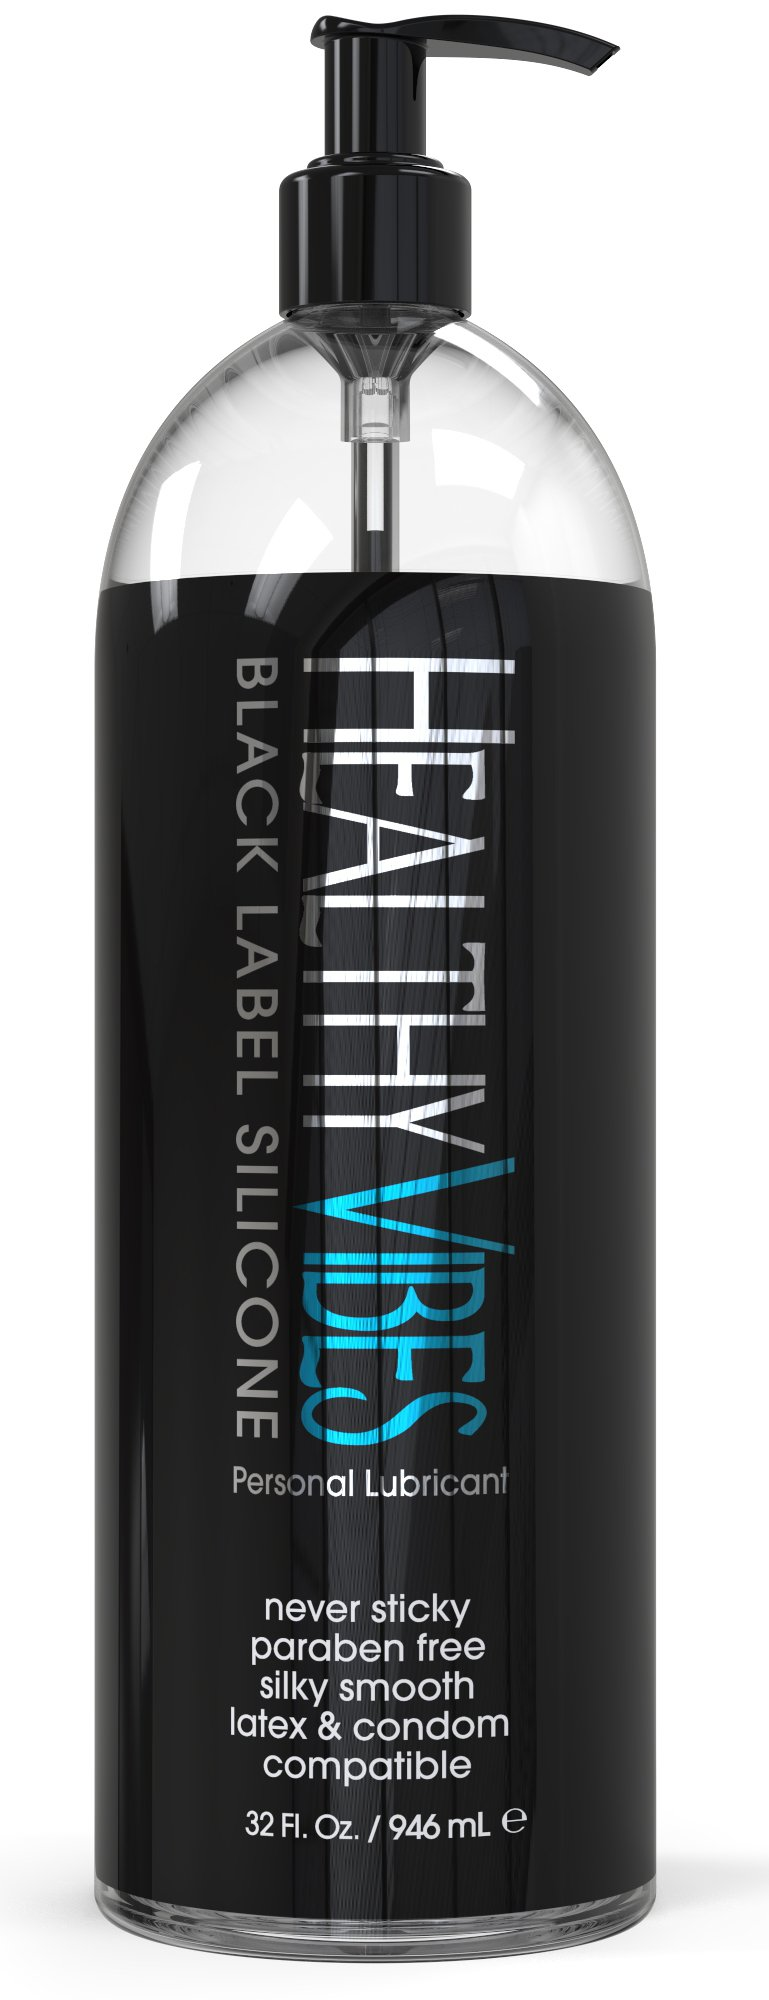 Silicone Based Personal Lubricant by Healthy Vibes, 32 Oz Long Lasting Sex Lube for Sensitive Skin on Women, Men, and Couples, Intimate Black Label (Paraben & Glycerin Free) by Healthy Vibes